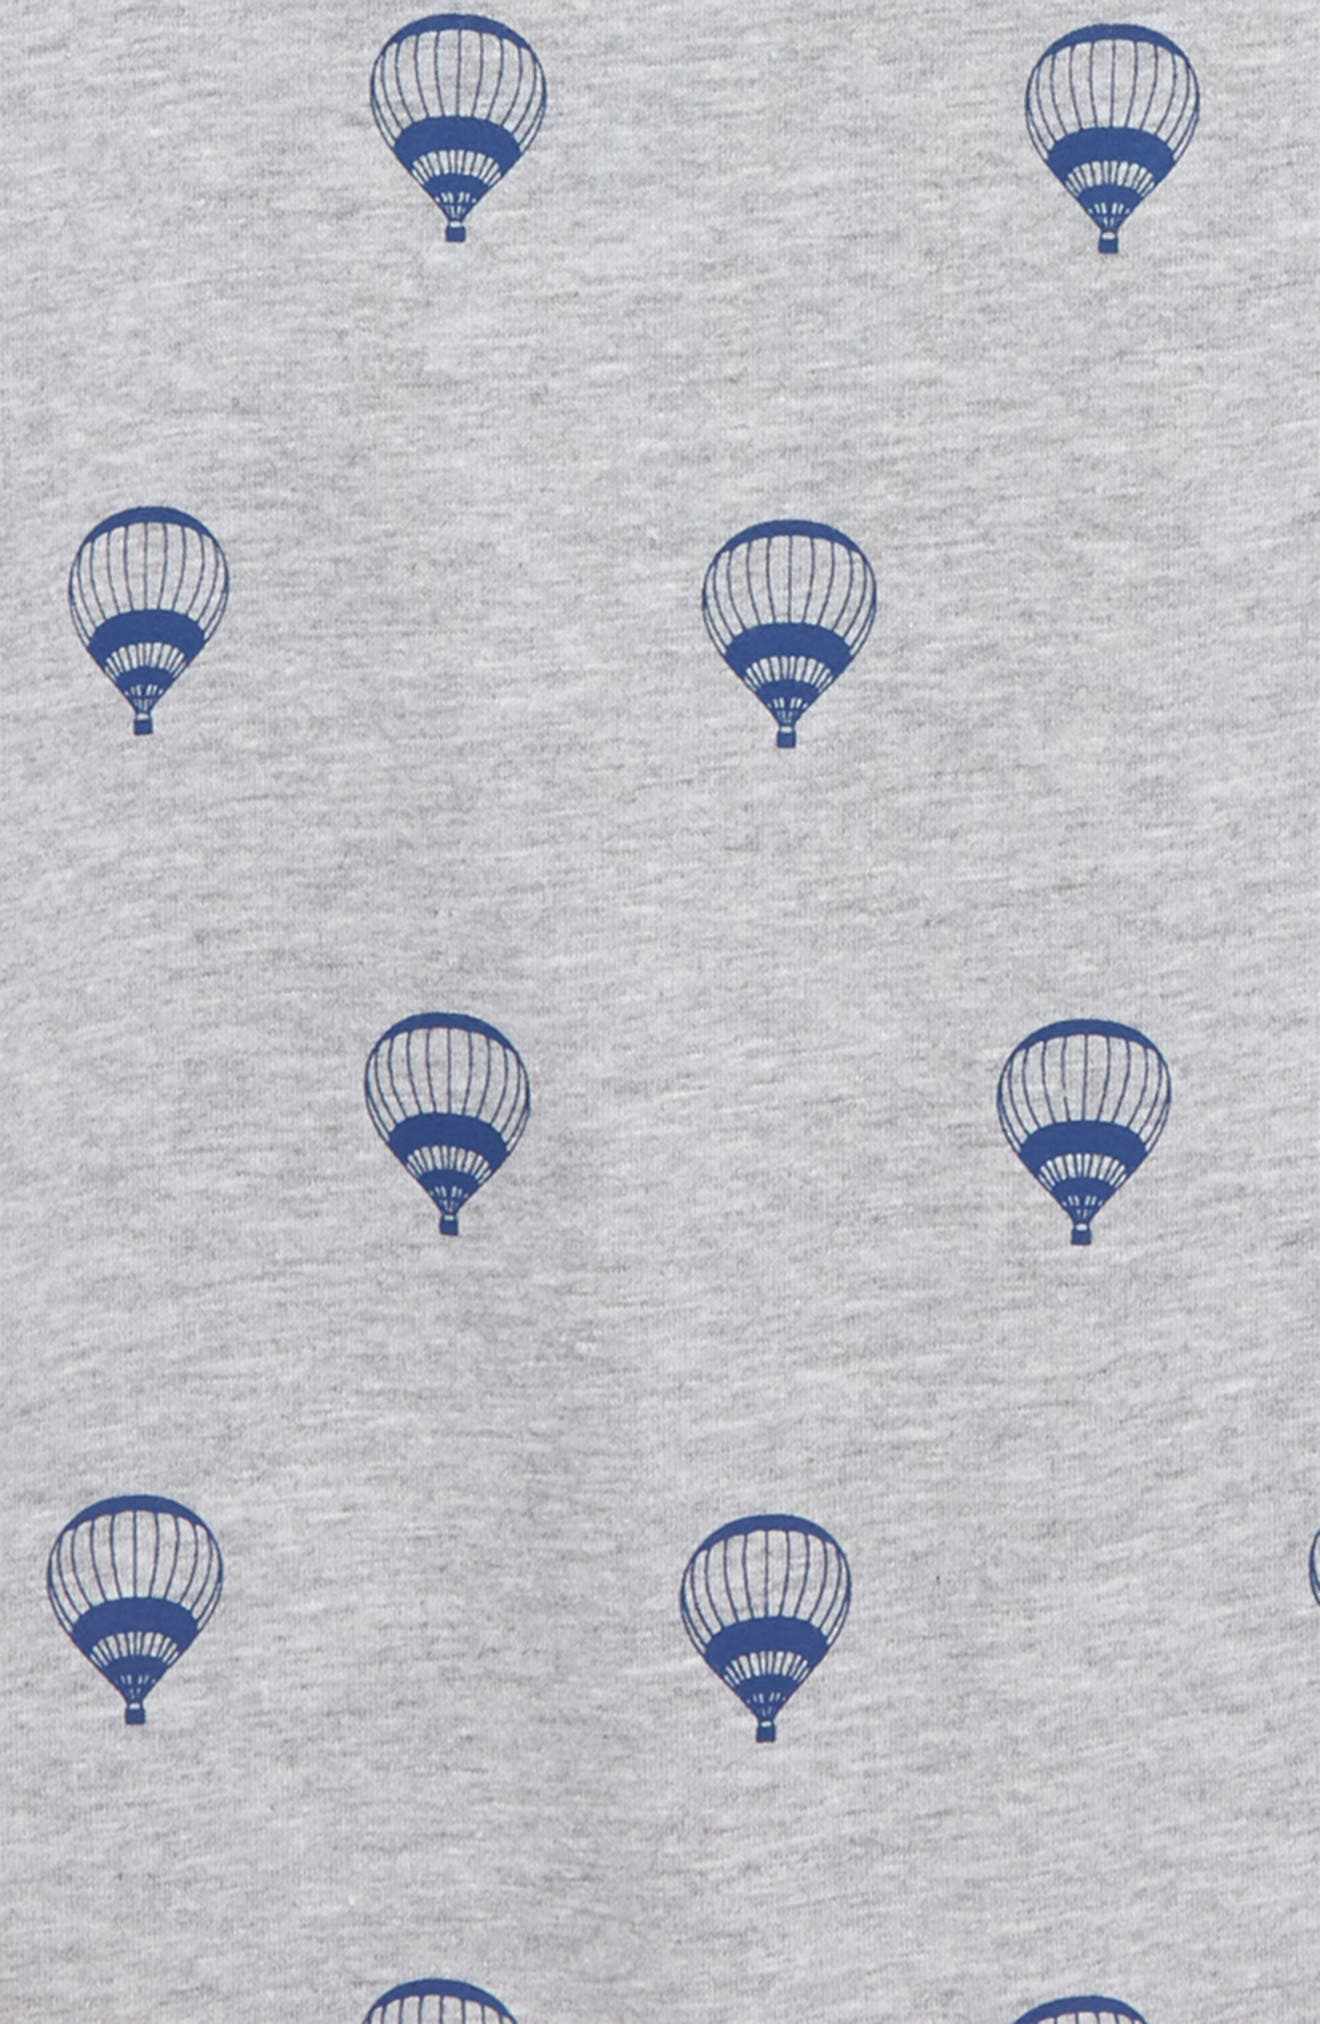 Hot Air Balloon Print Henley,                             Alternate thumbnail 2, color,                             032